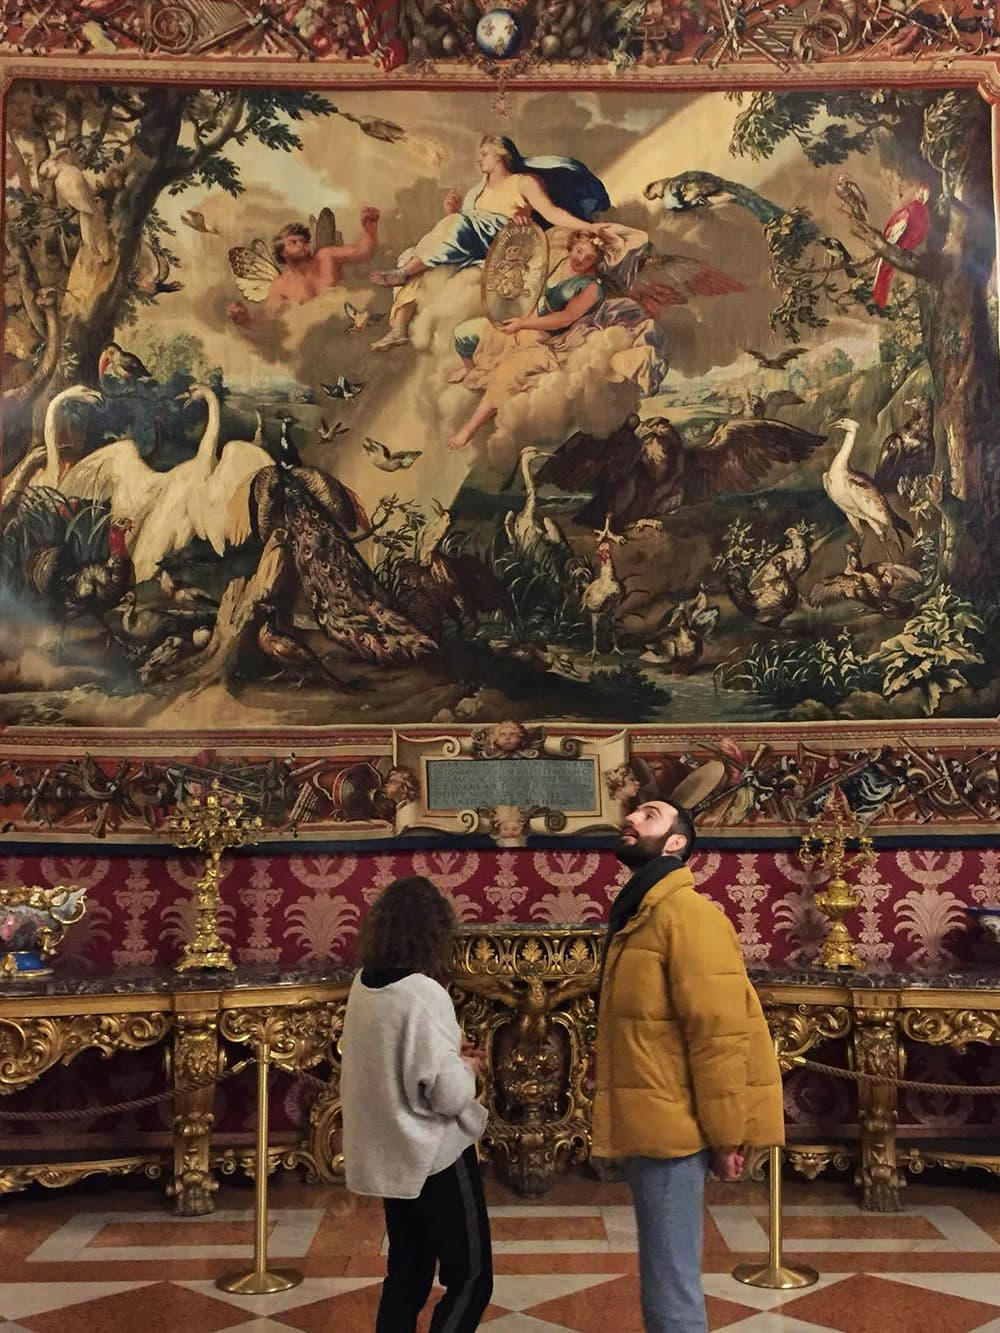 Huge tapestries inside the Royal Palace